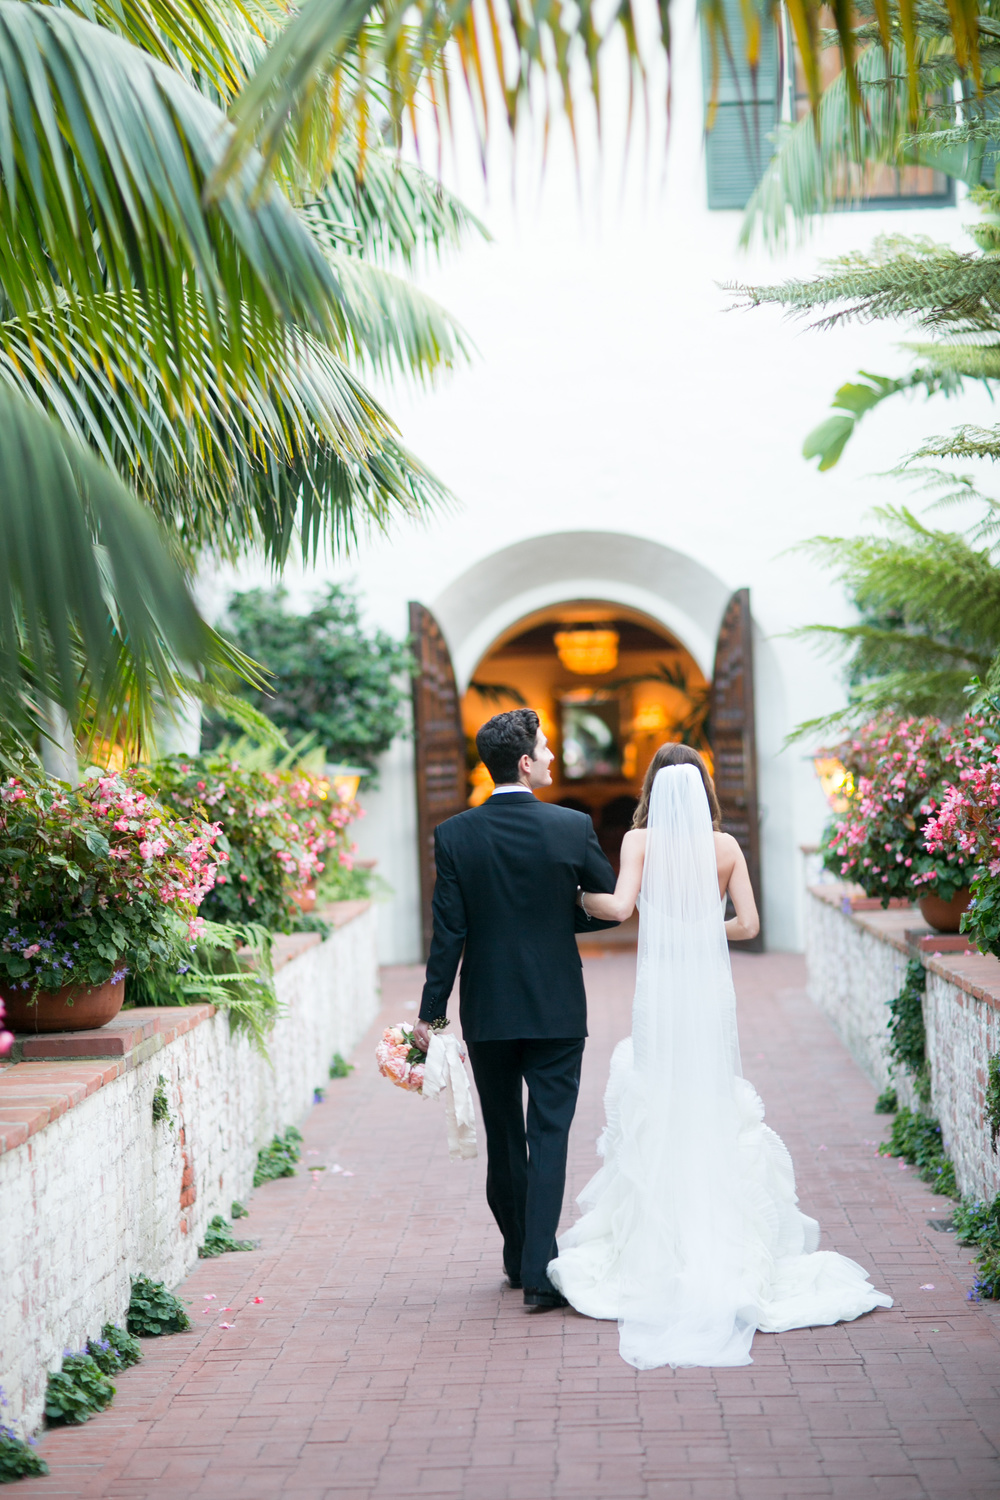 michellebeller.com | Four Seasons Biltmore Wedding | Michelle Beller Photography